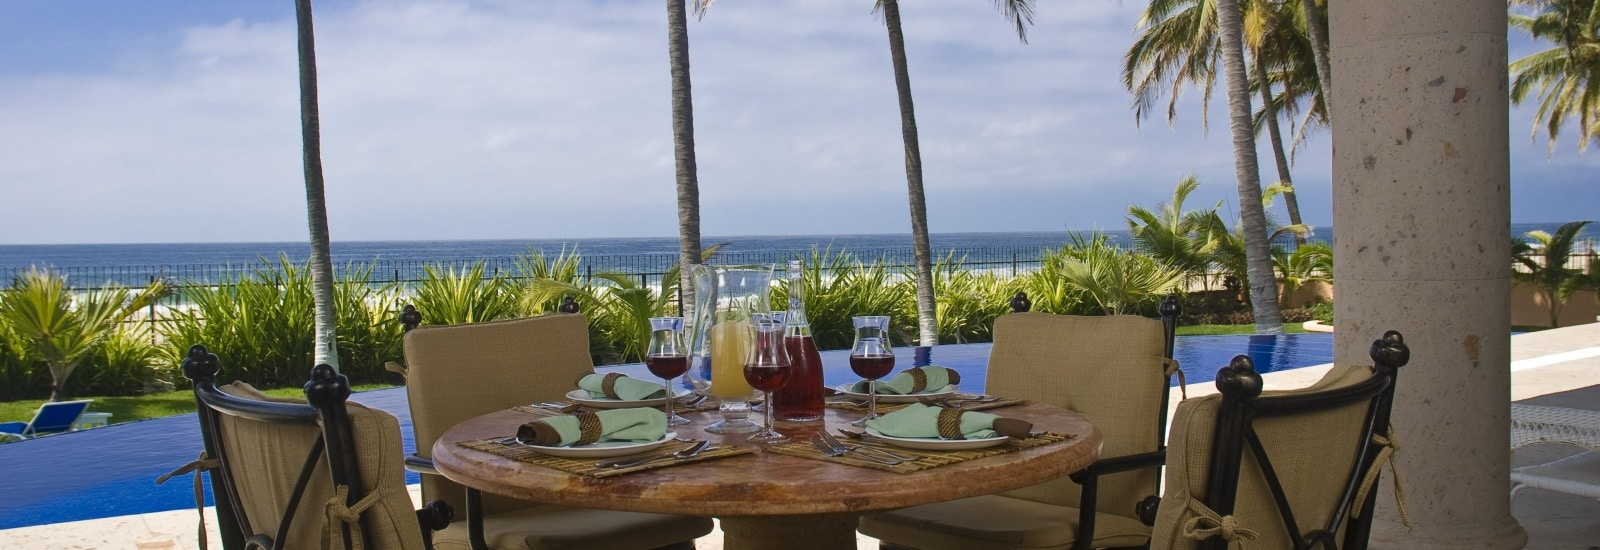 breakfast-punta-mita-mexico